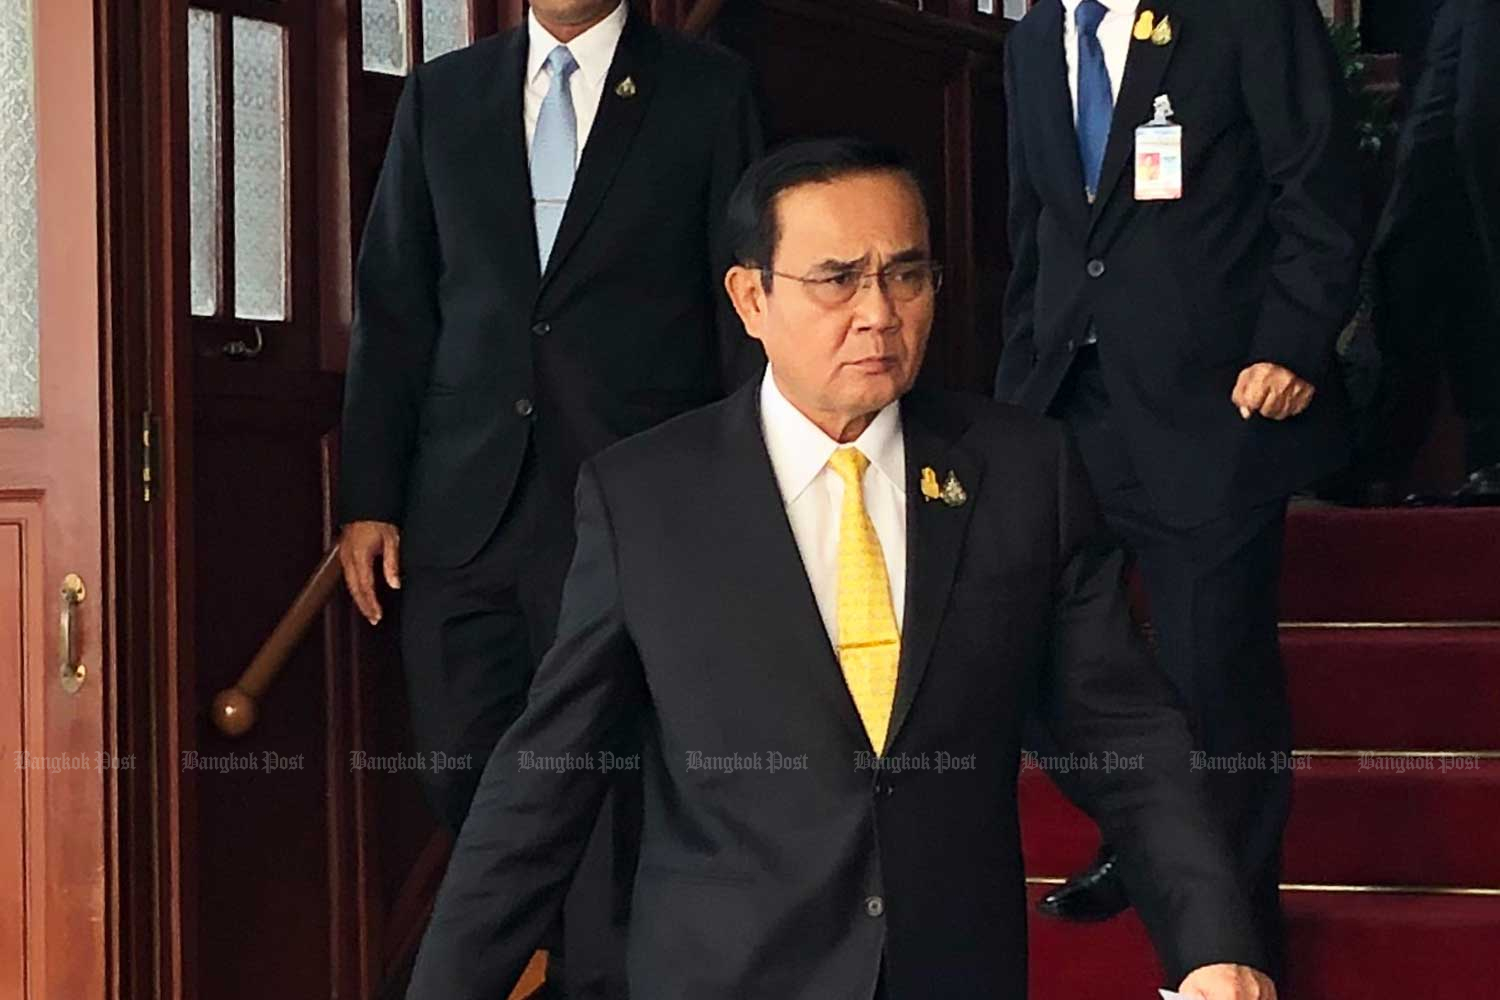 Prime Minister Prayut Chan-o-cha at the Defence Ministry on Thursday. (Photo by Wassana Nanuam)